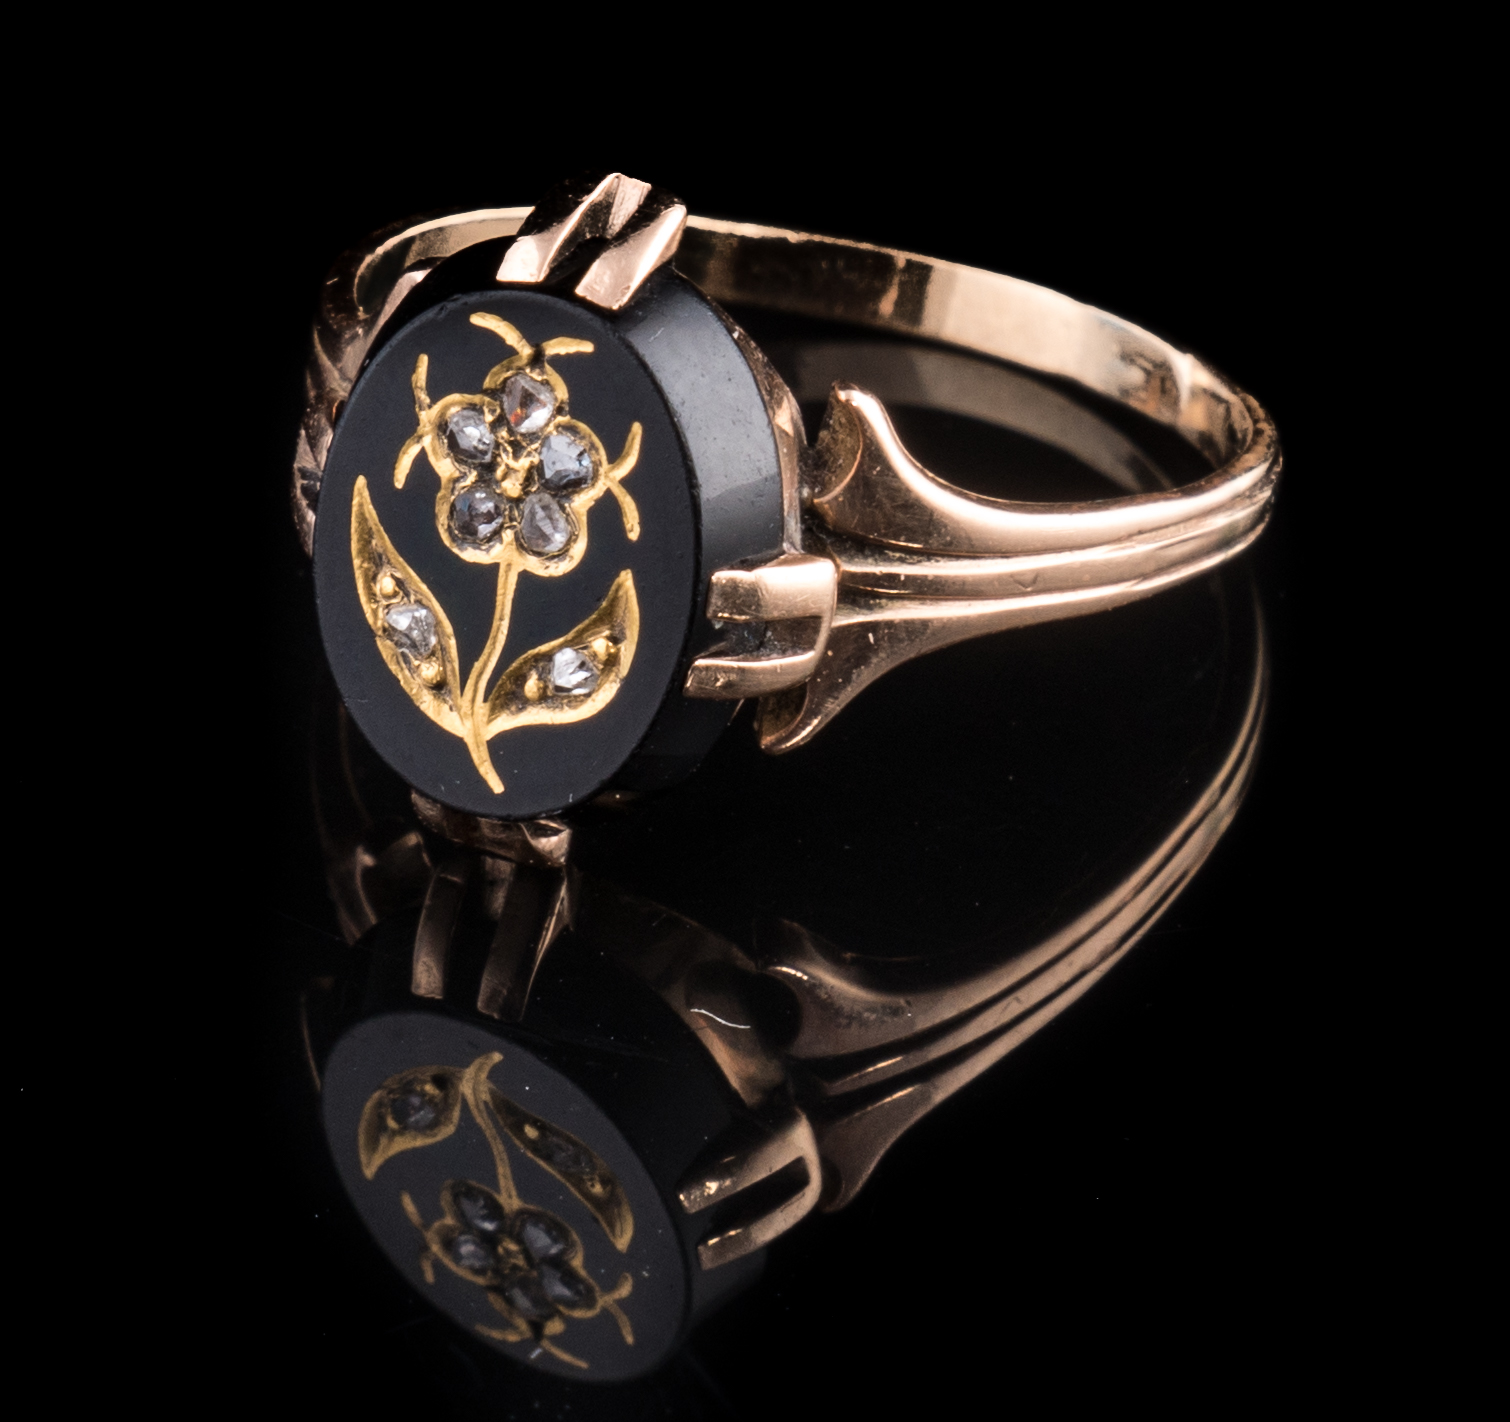 ESTATE onyx 10k Victorian ring with flower rose cut diamonds